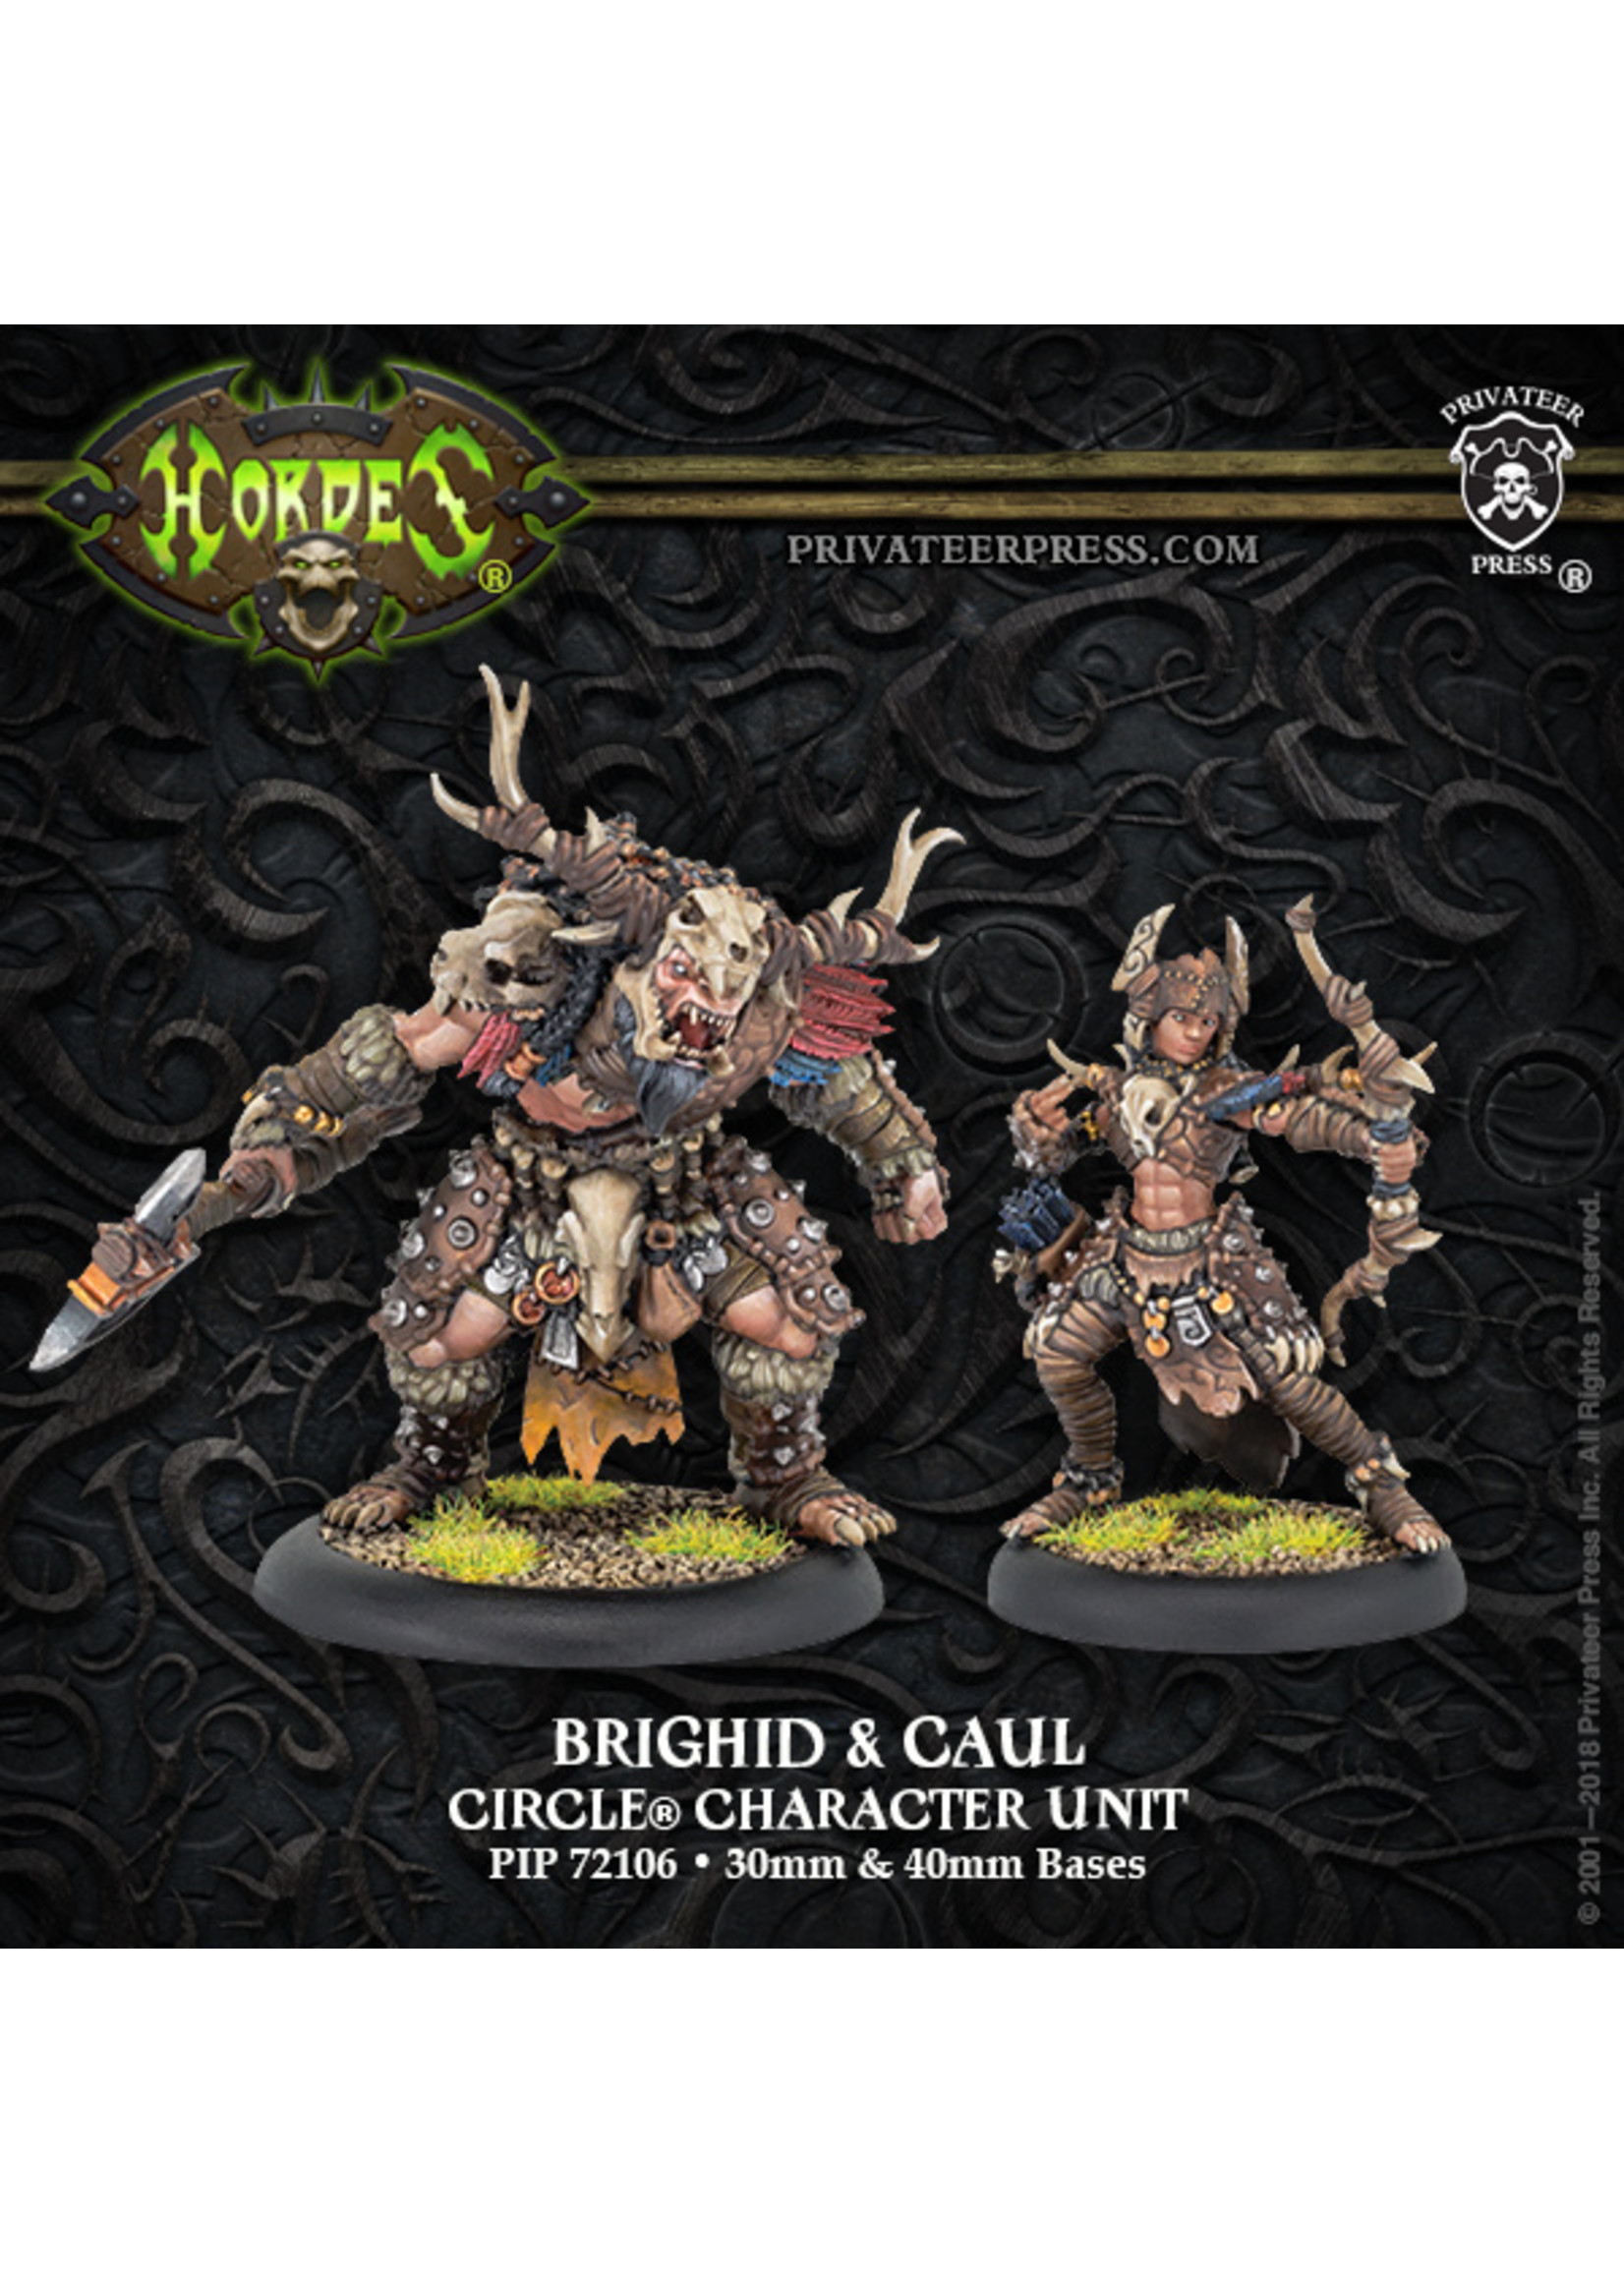 Hordes: Circle Orboros Brighid & Caul Character Unit (Resin and White Metal)